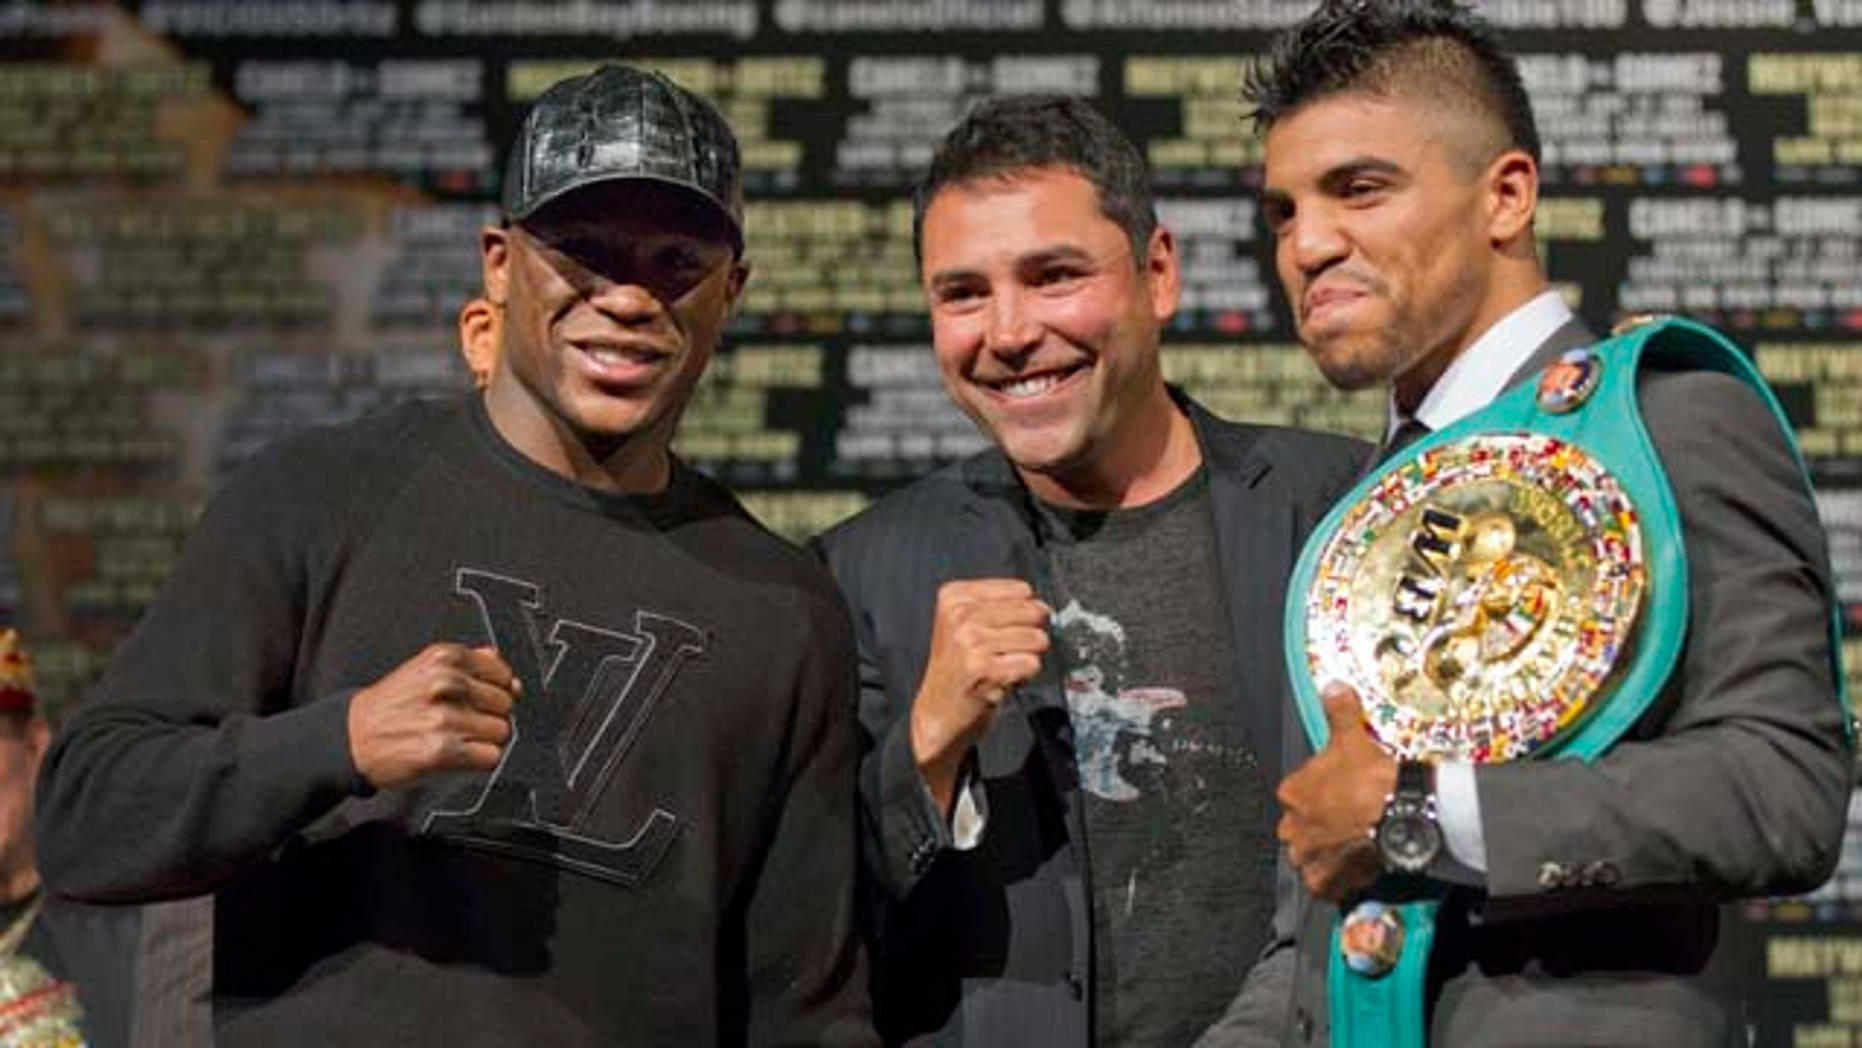 September 14, 2011: Floyd Mayweather, left, and Victor Ortiz, right, pose for a photo with Oscar De La Hoya after a news conference.